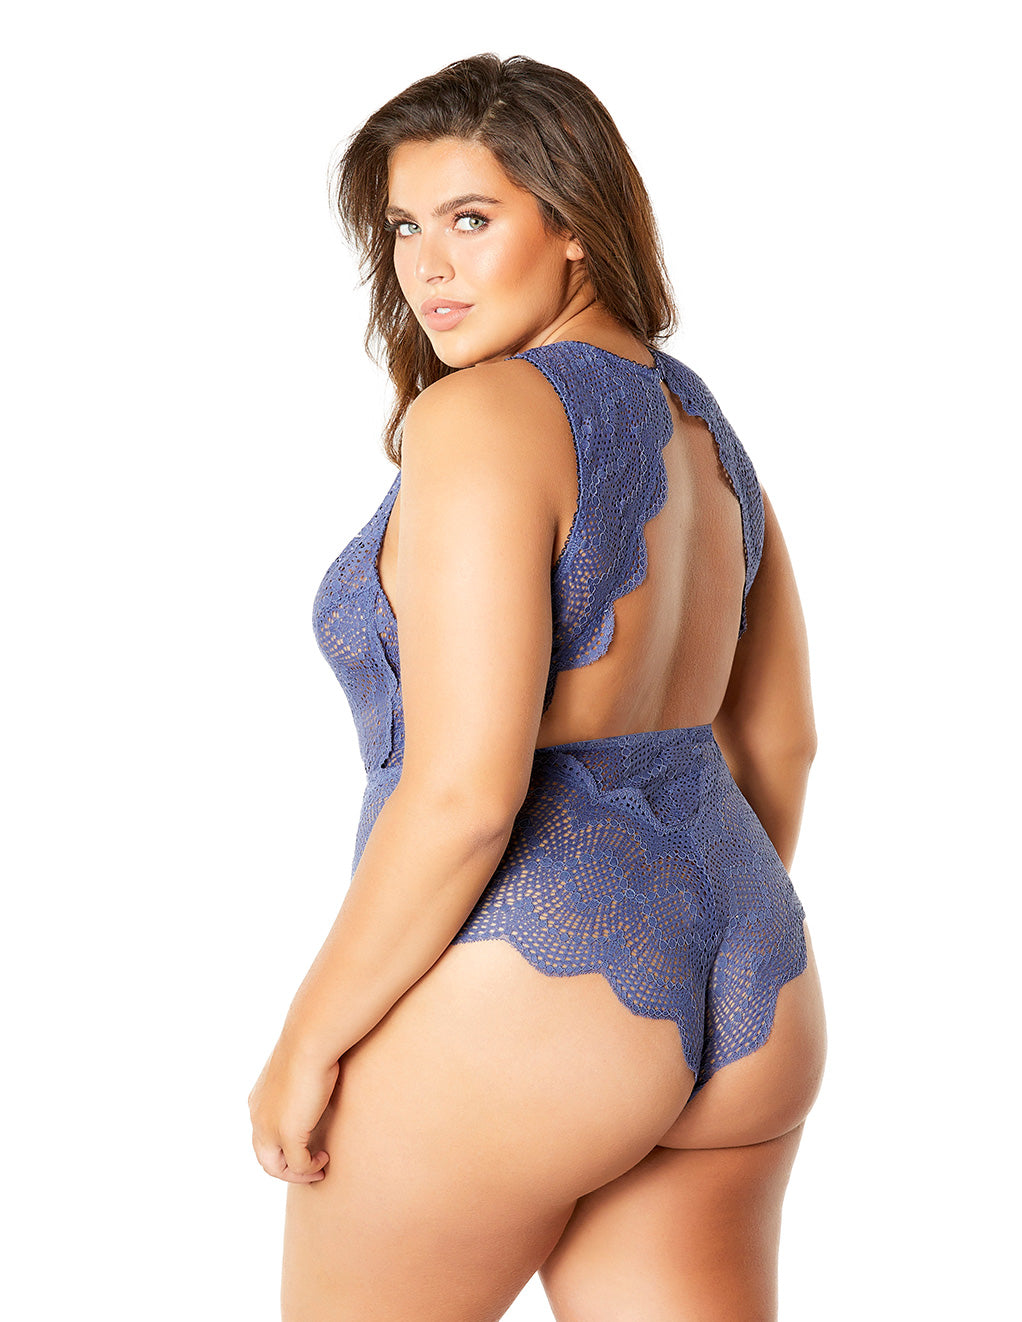 Oh La La Cheri Striped Lace Plunge Teddy Blue Back Plus Size